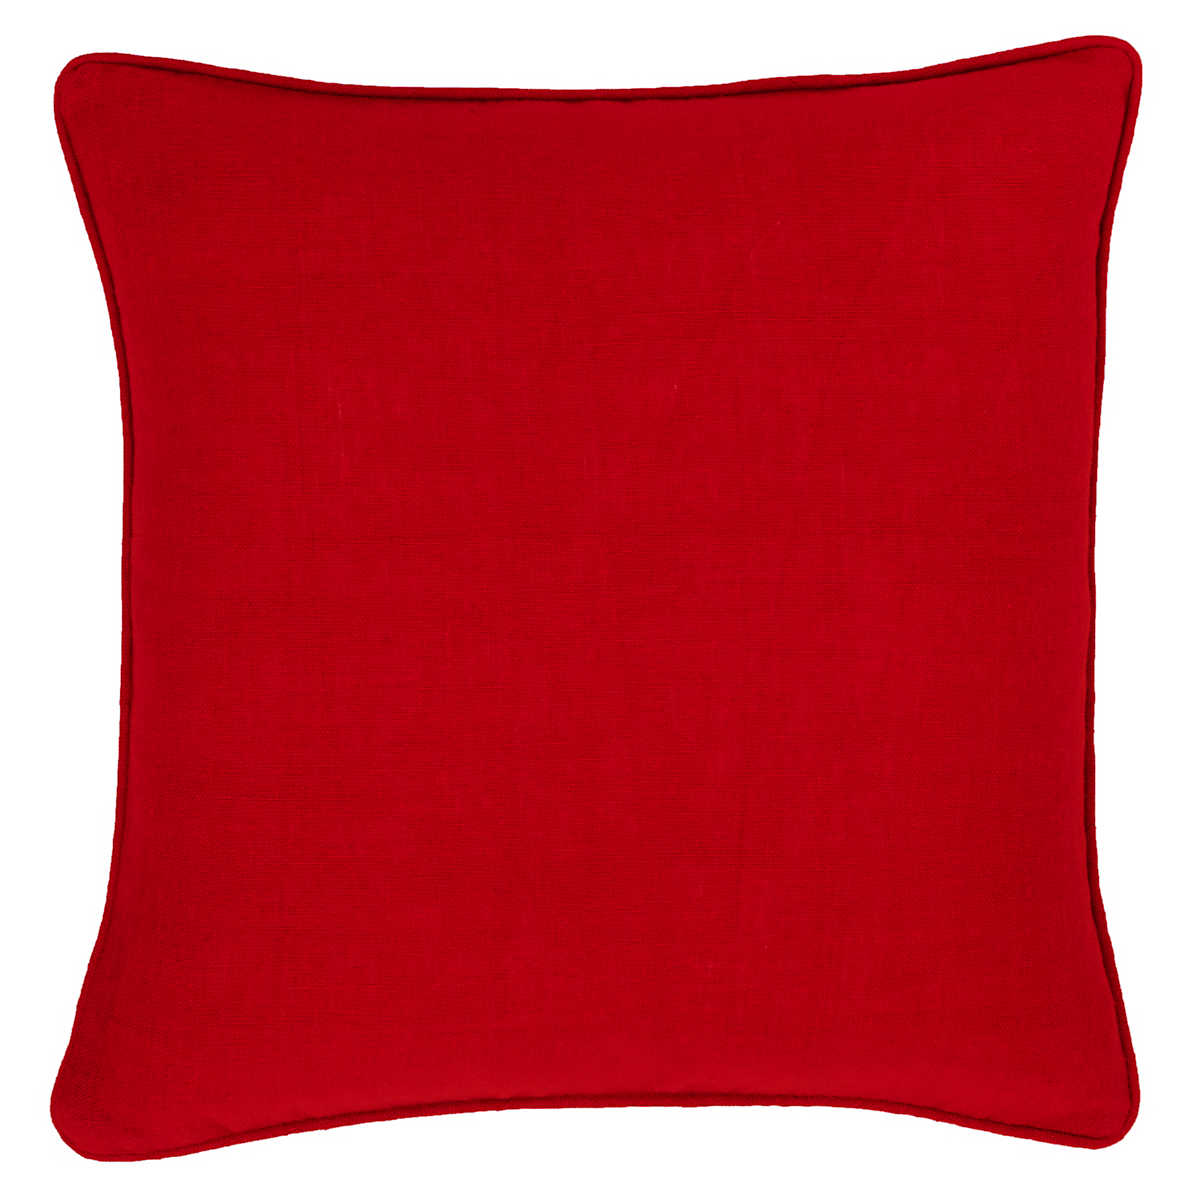 red pillows red bedding décor  more  pine cone hill - stone washed linen red decorative pillow